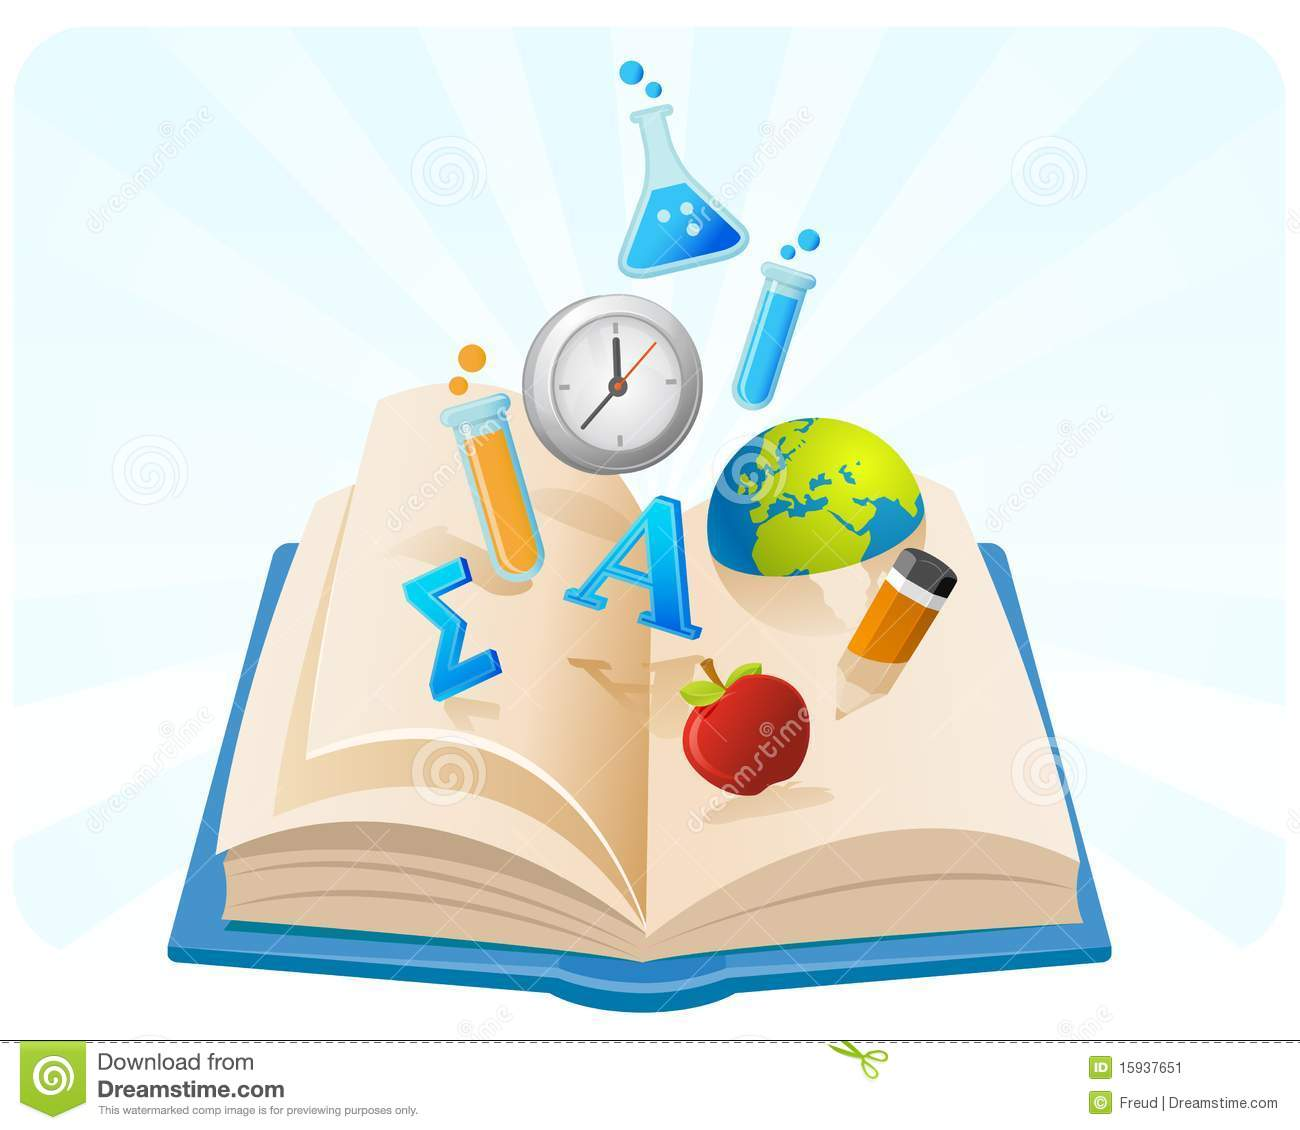 Books clipart knowledge. Panda free images knowledgeclipart